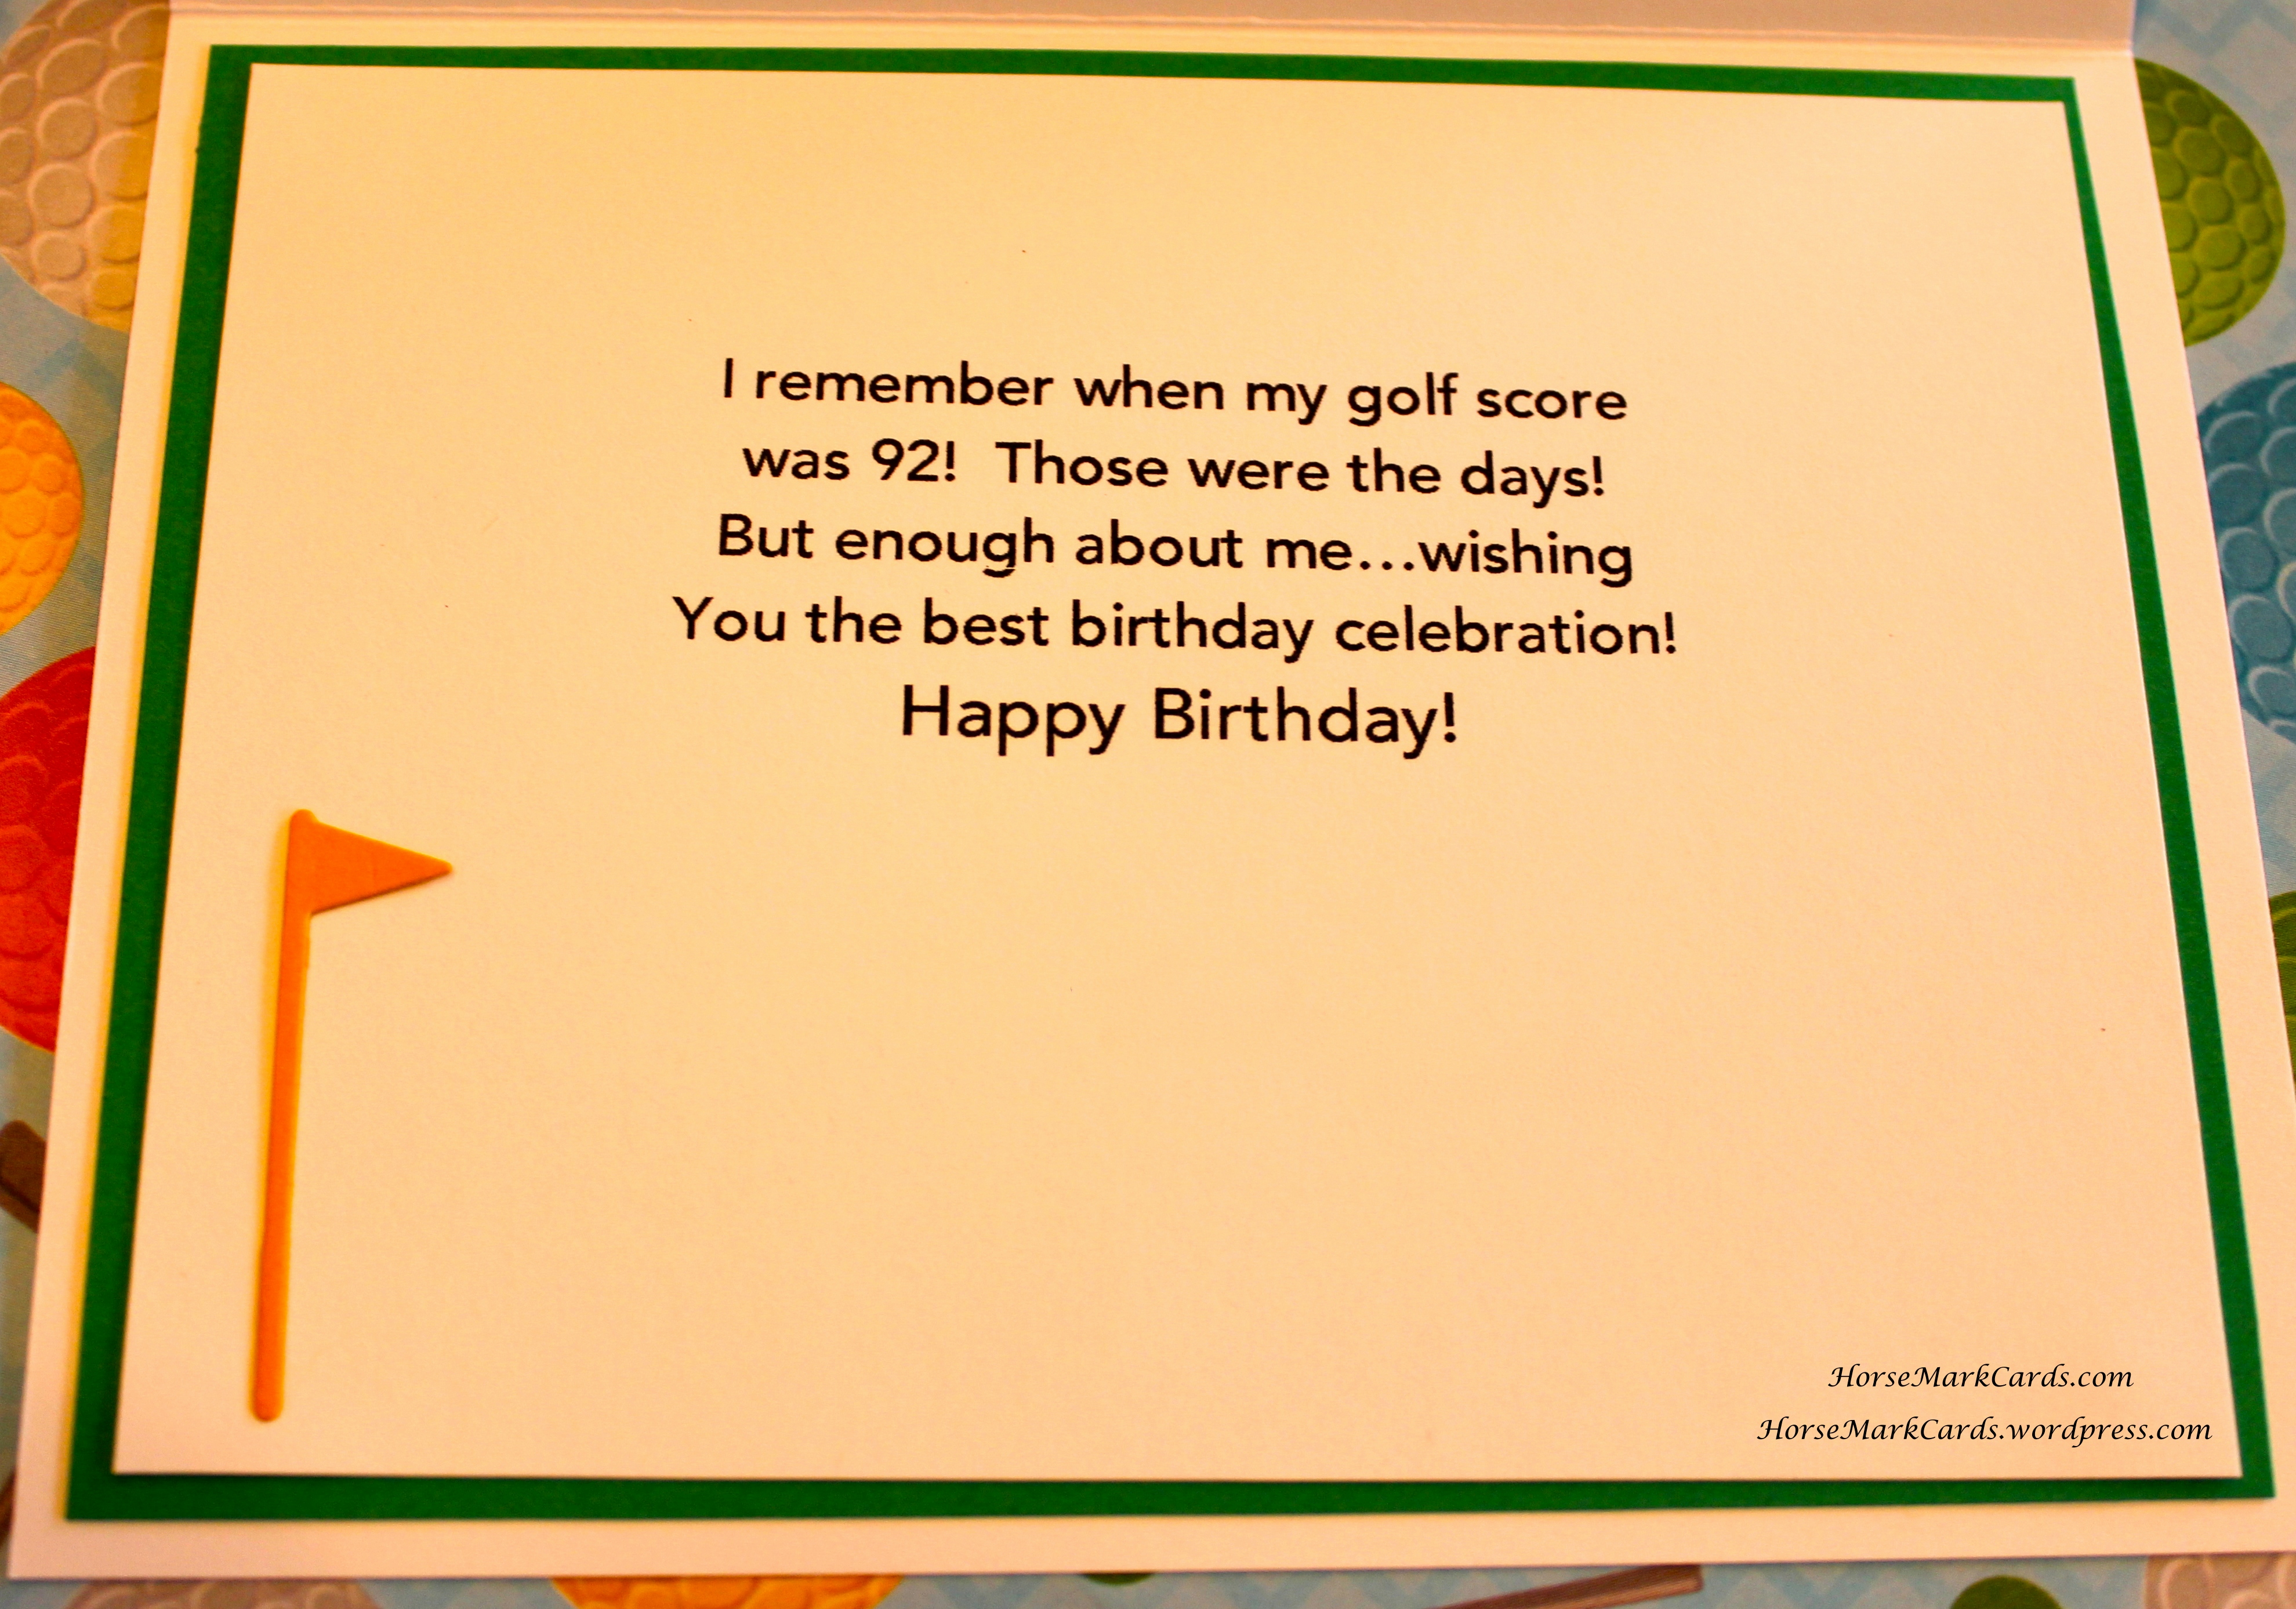 funniest birthday card messages ; funny-birthday-card-wishes-best-of-funny-birthday-card-messages-2-of-funny-birthday-card-wishes